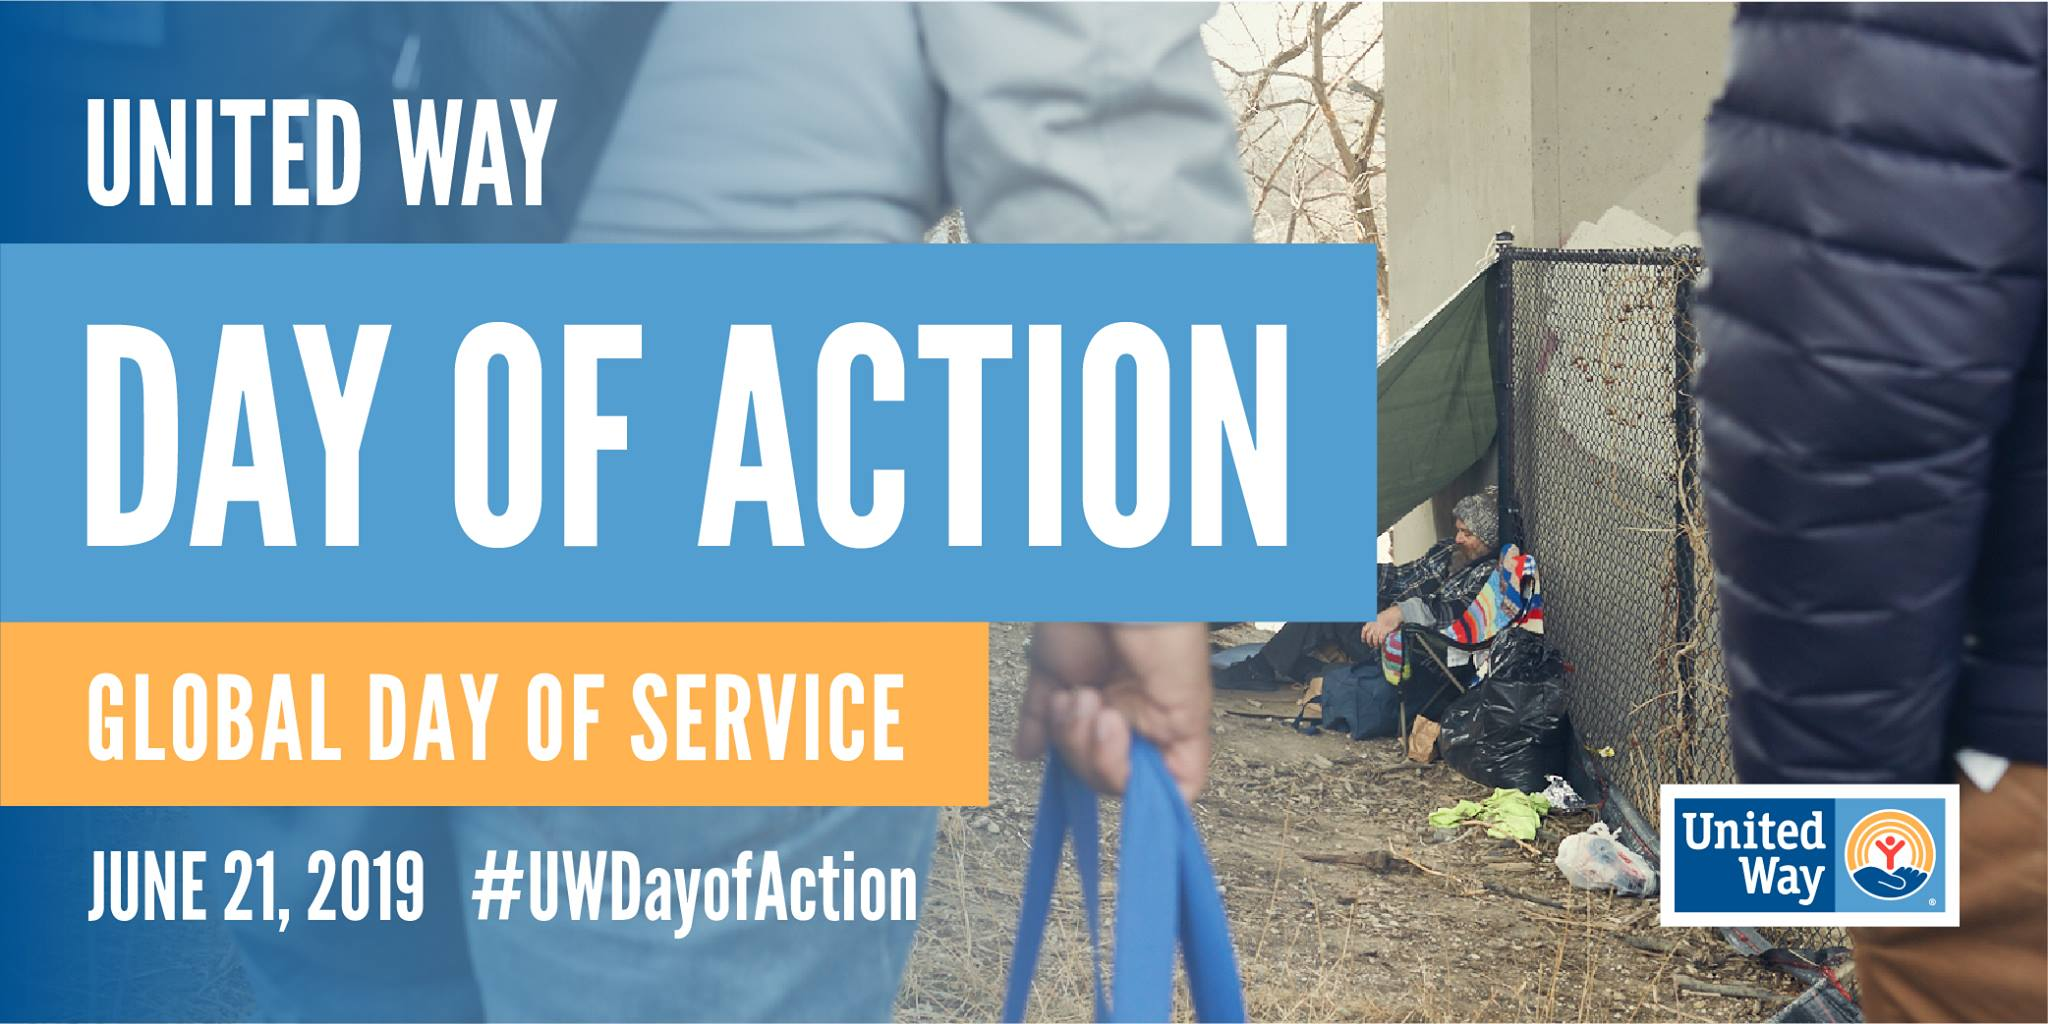 Day of action banner